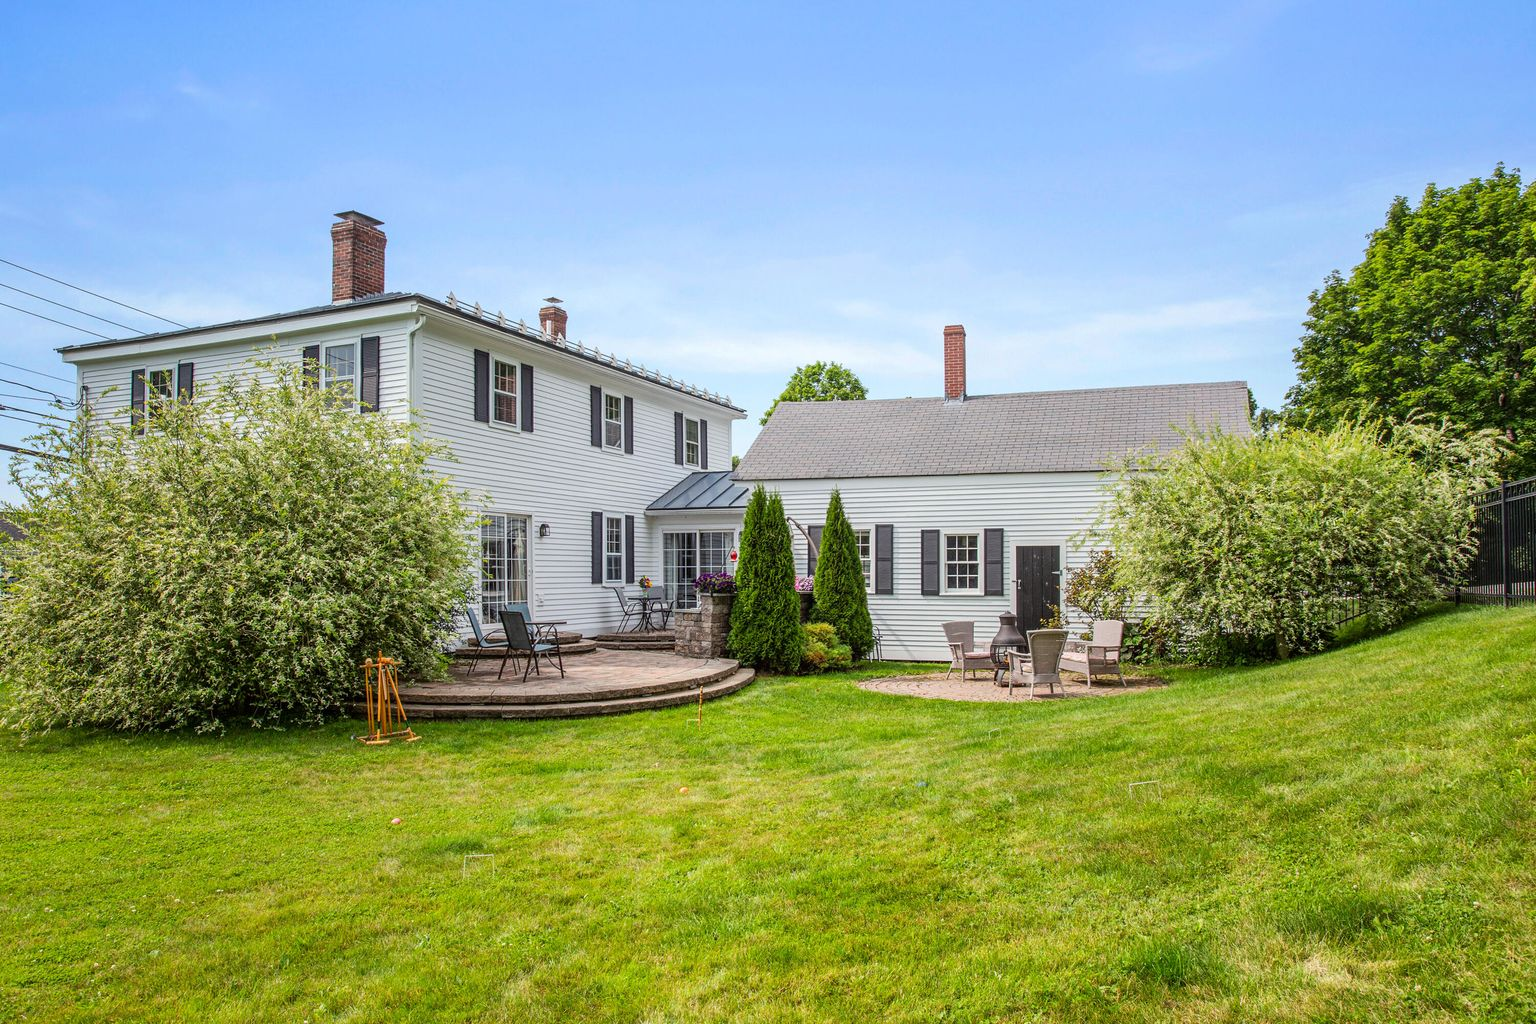 10-76BristolRd-Damariscotta-KS The backyard patio area and yard is a private and quiet place to enjoy the outdoors. Show more